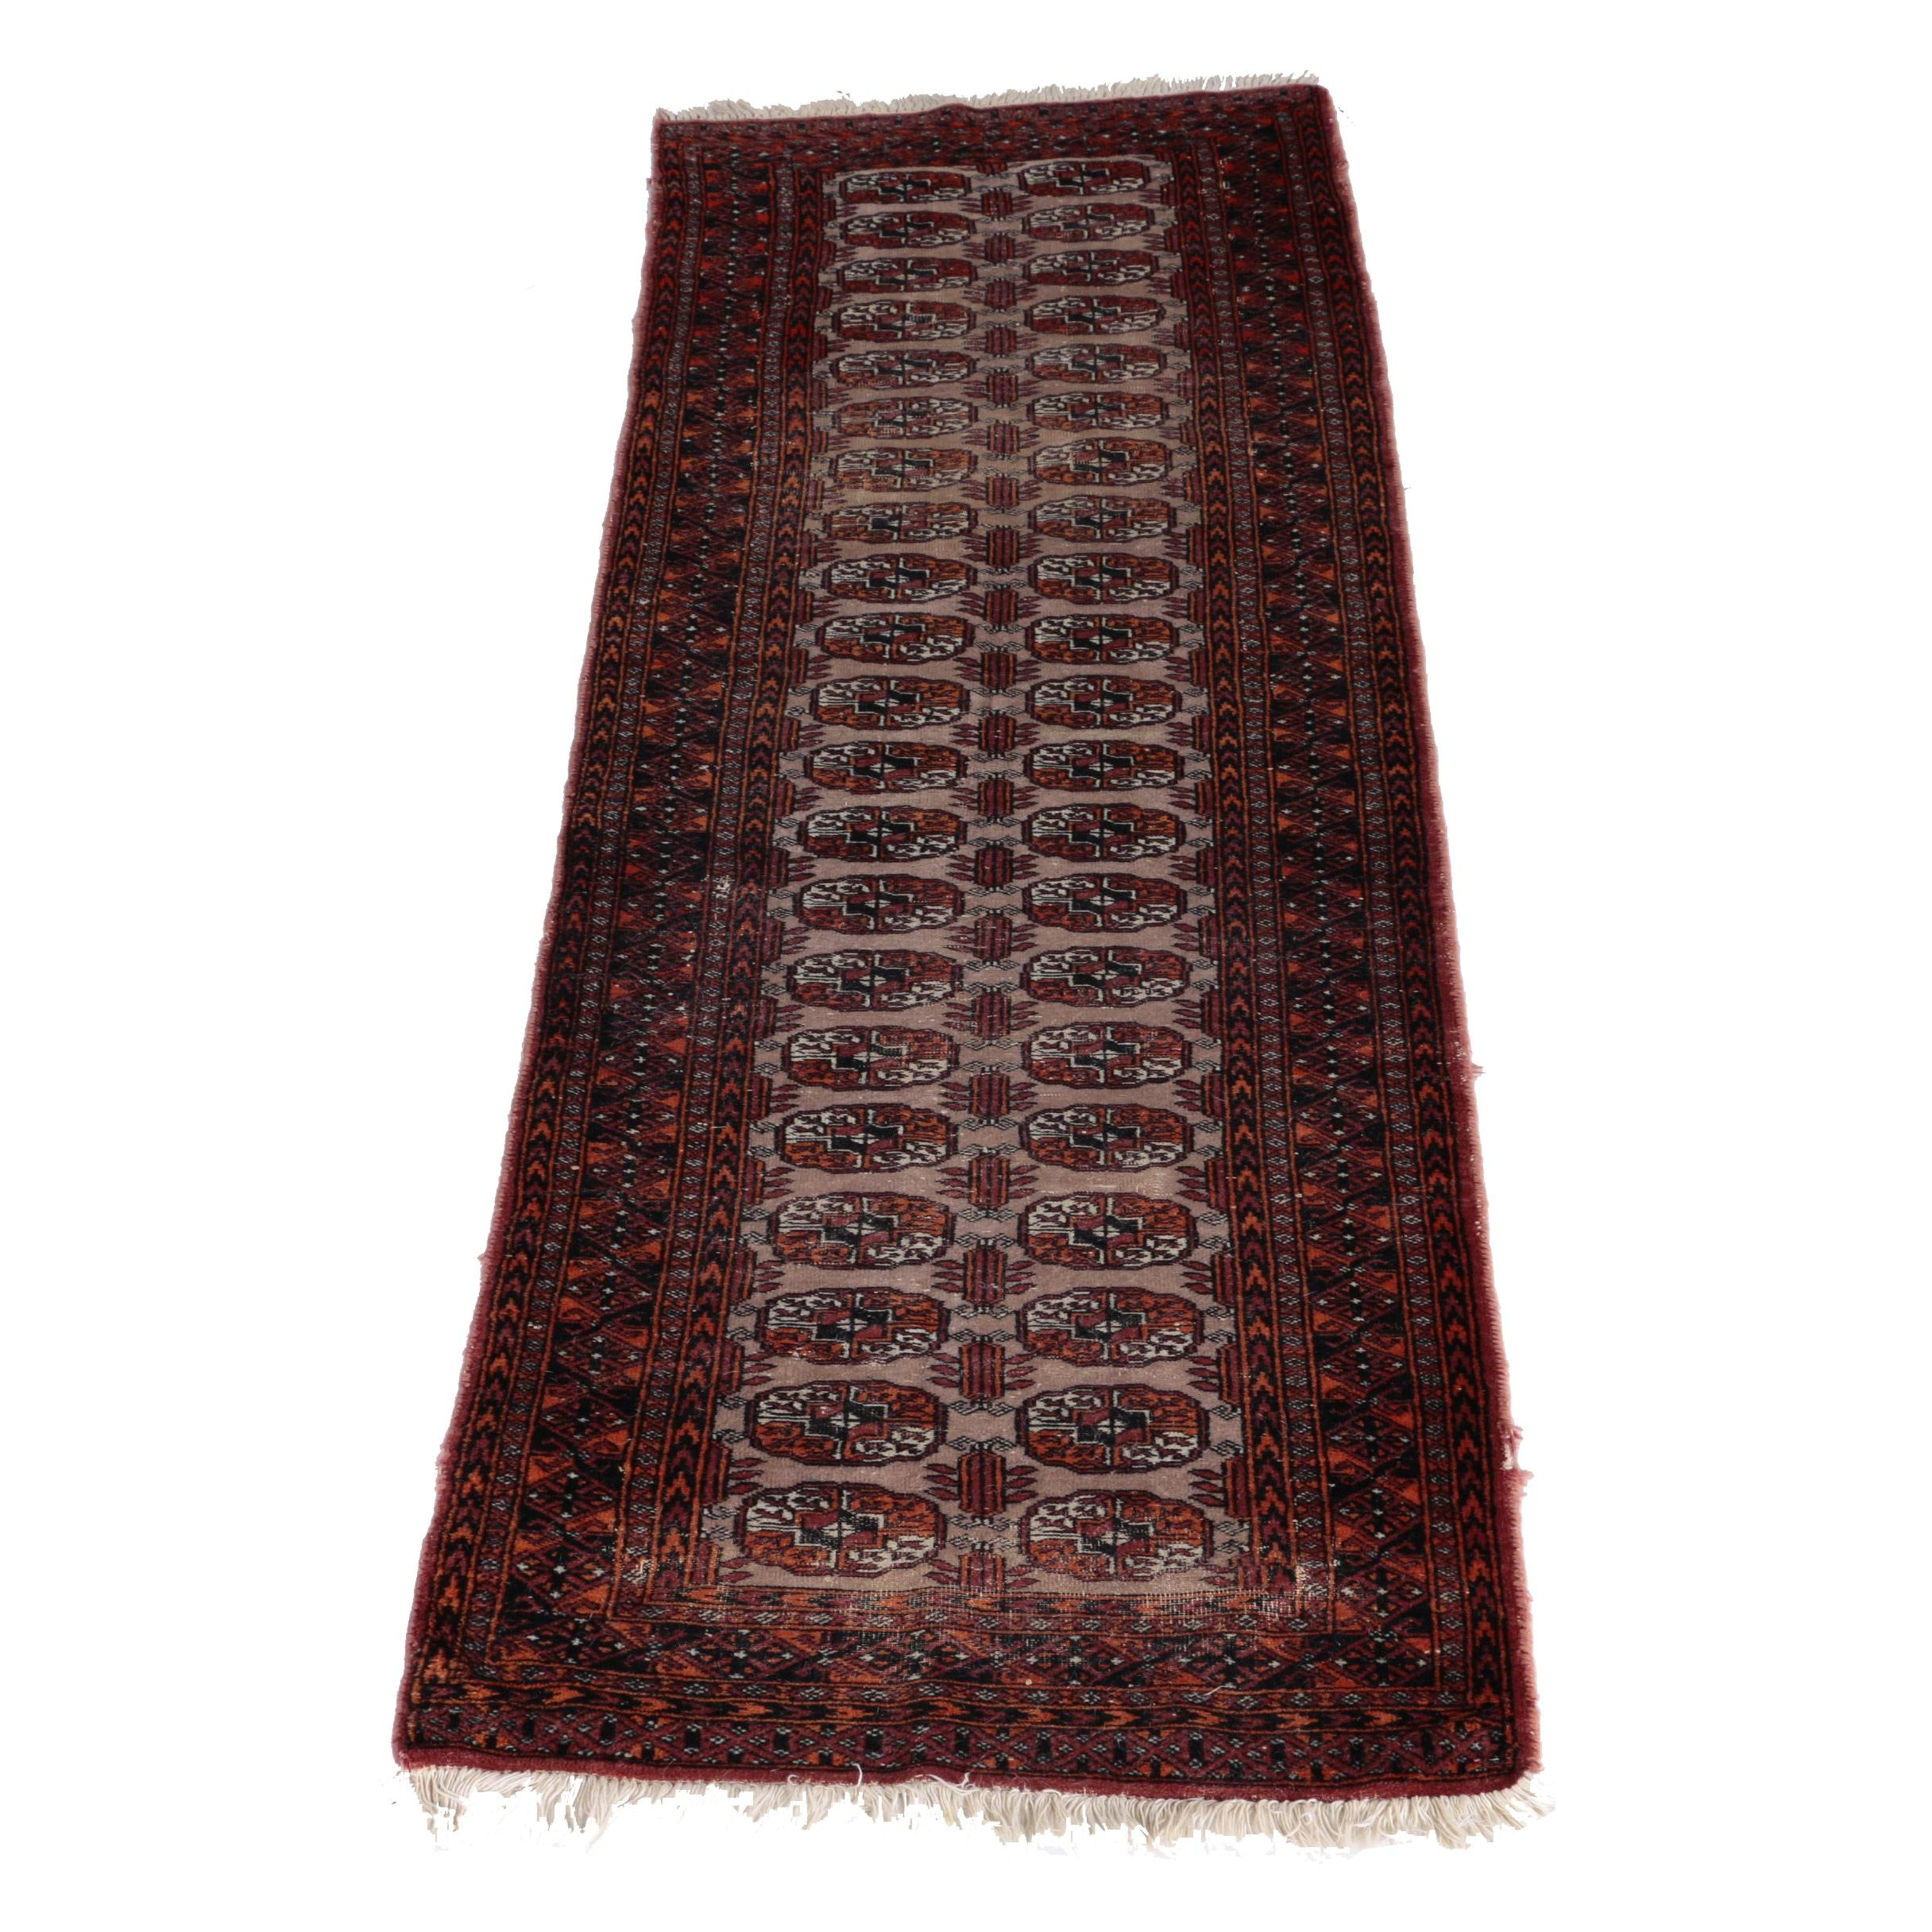 Semi-Antique Hand-Knotted Tekke Bokhara Carpet Runner